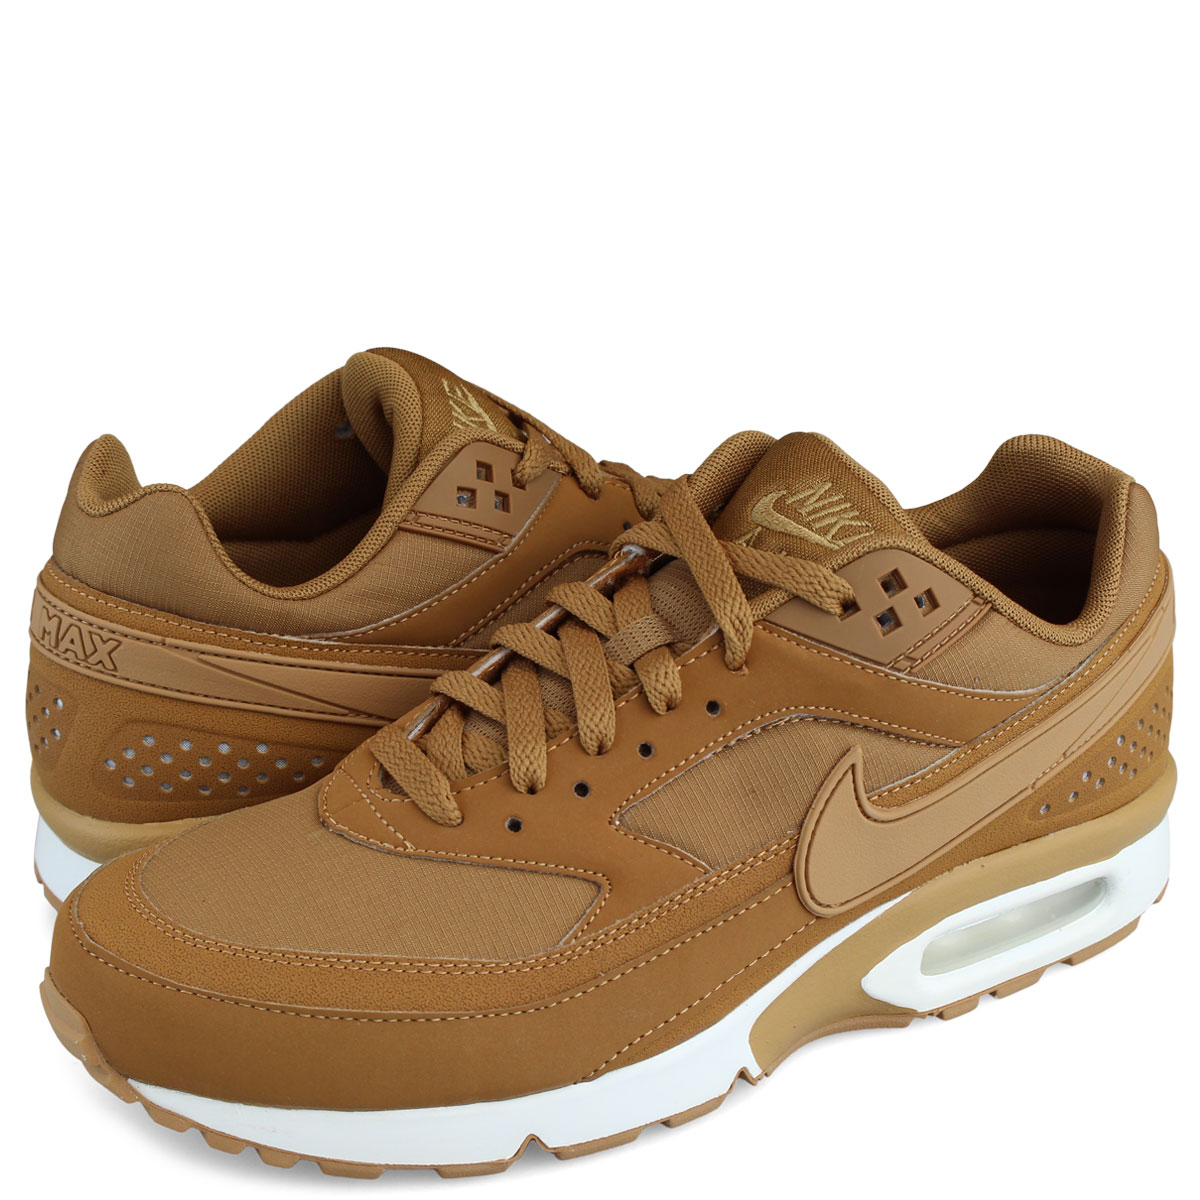 e414f611462d ALLSPORTS  NIKE AIR MAX BW Kie Ney AMAX sneakers 881